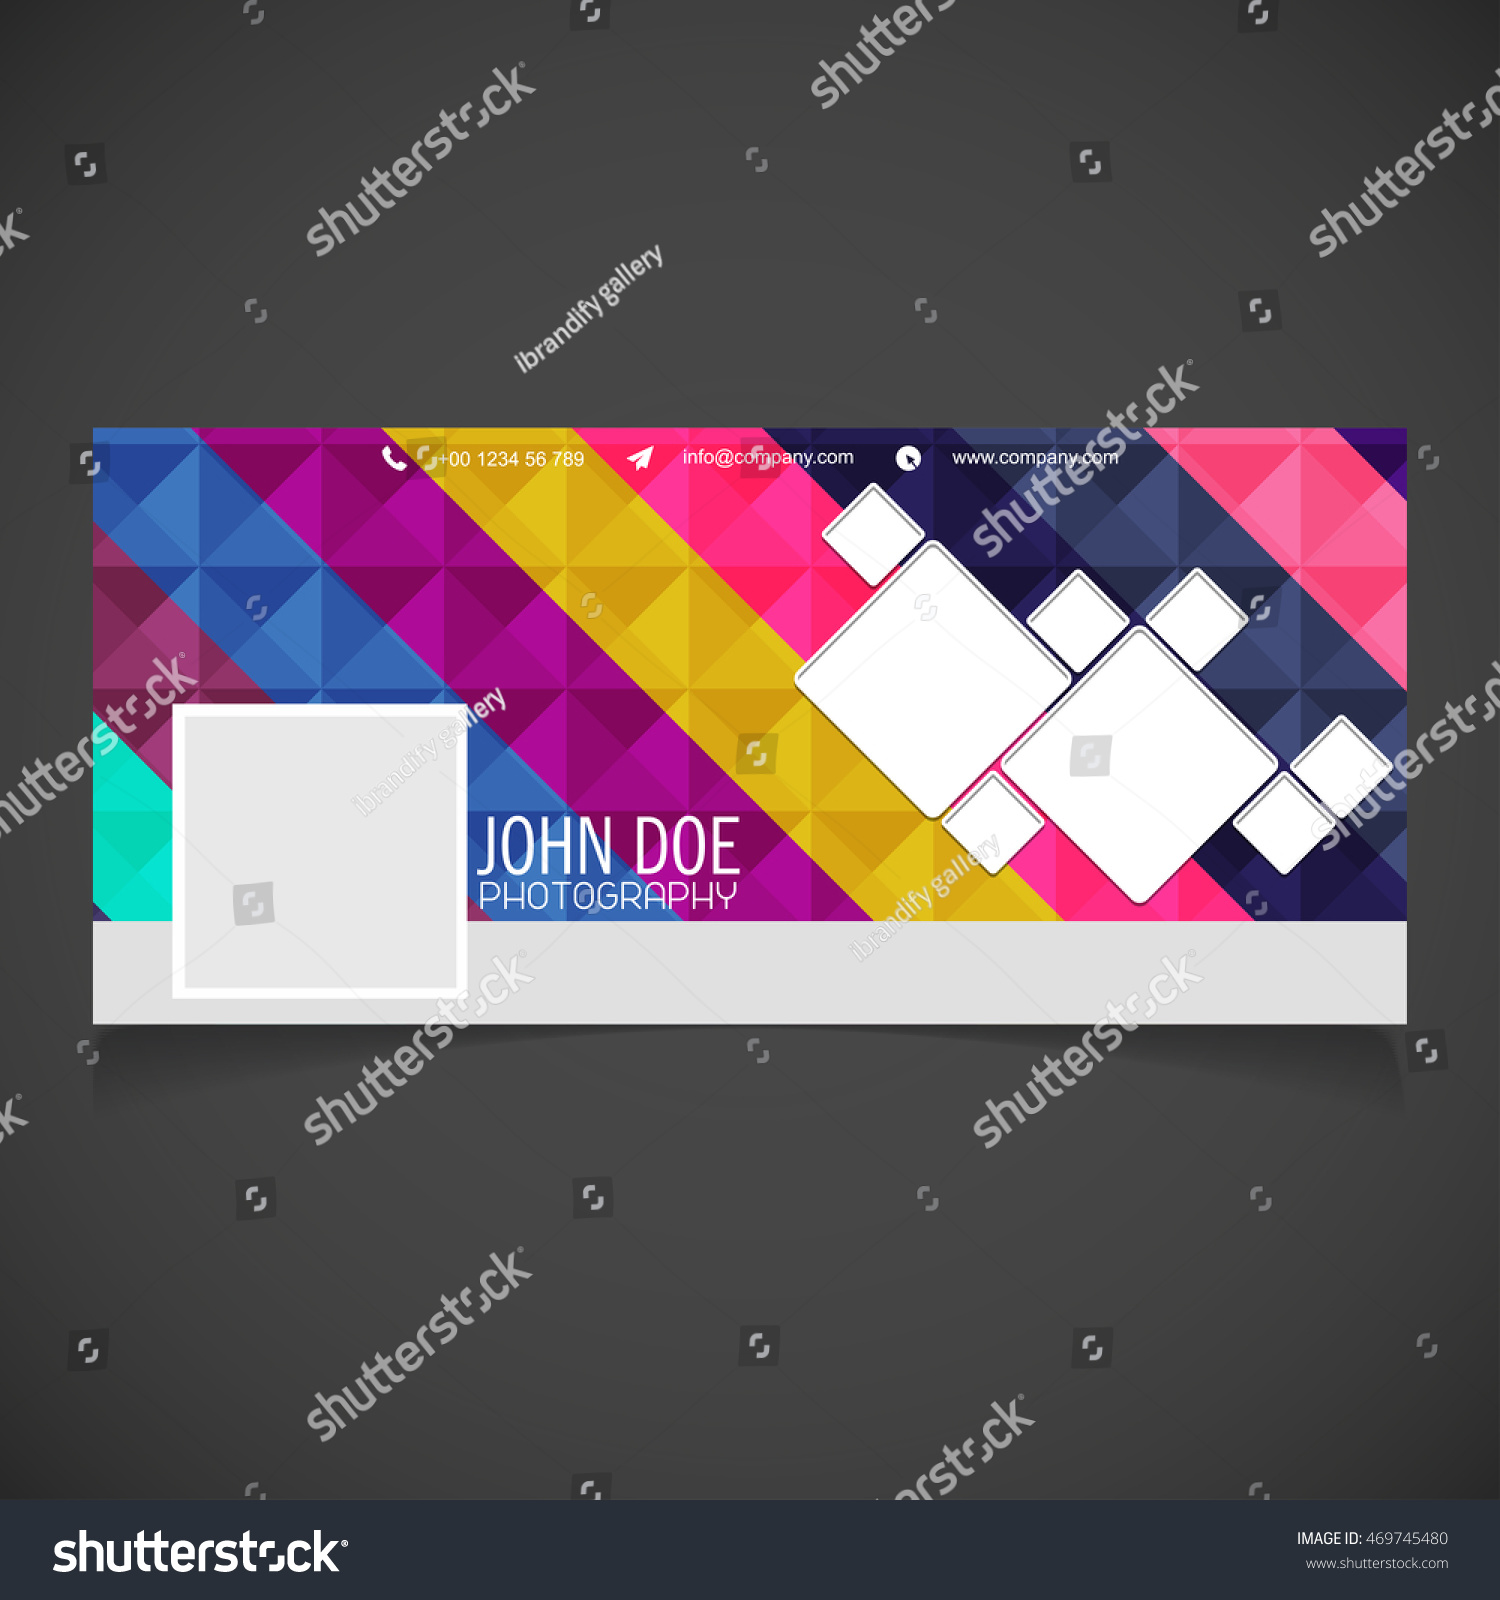 Creative Photography Banner Template Place Image Stock Vector